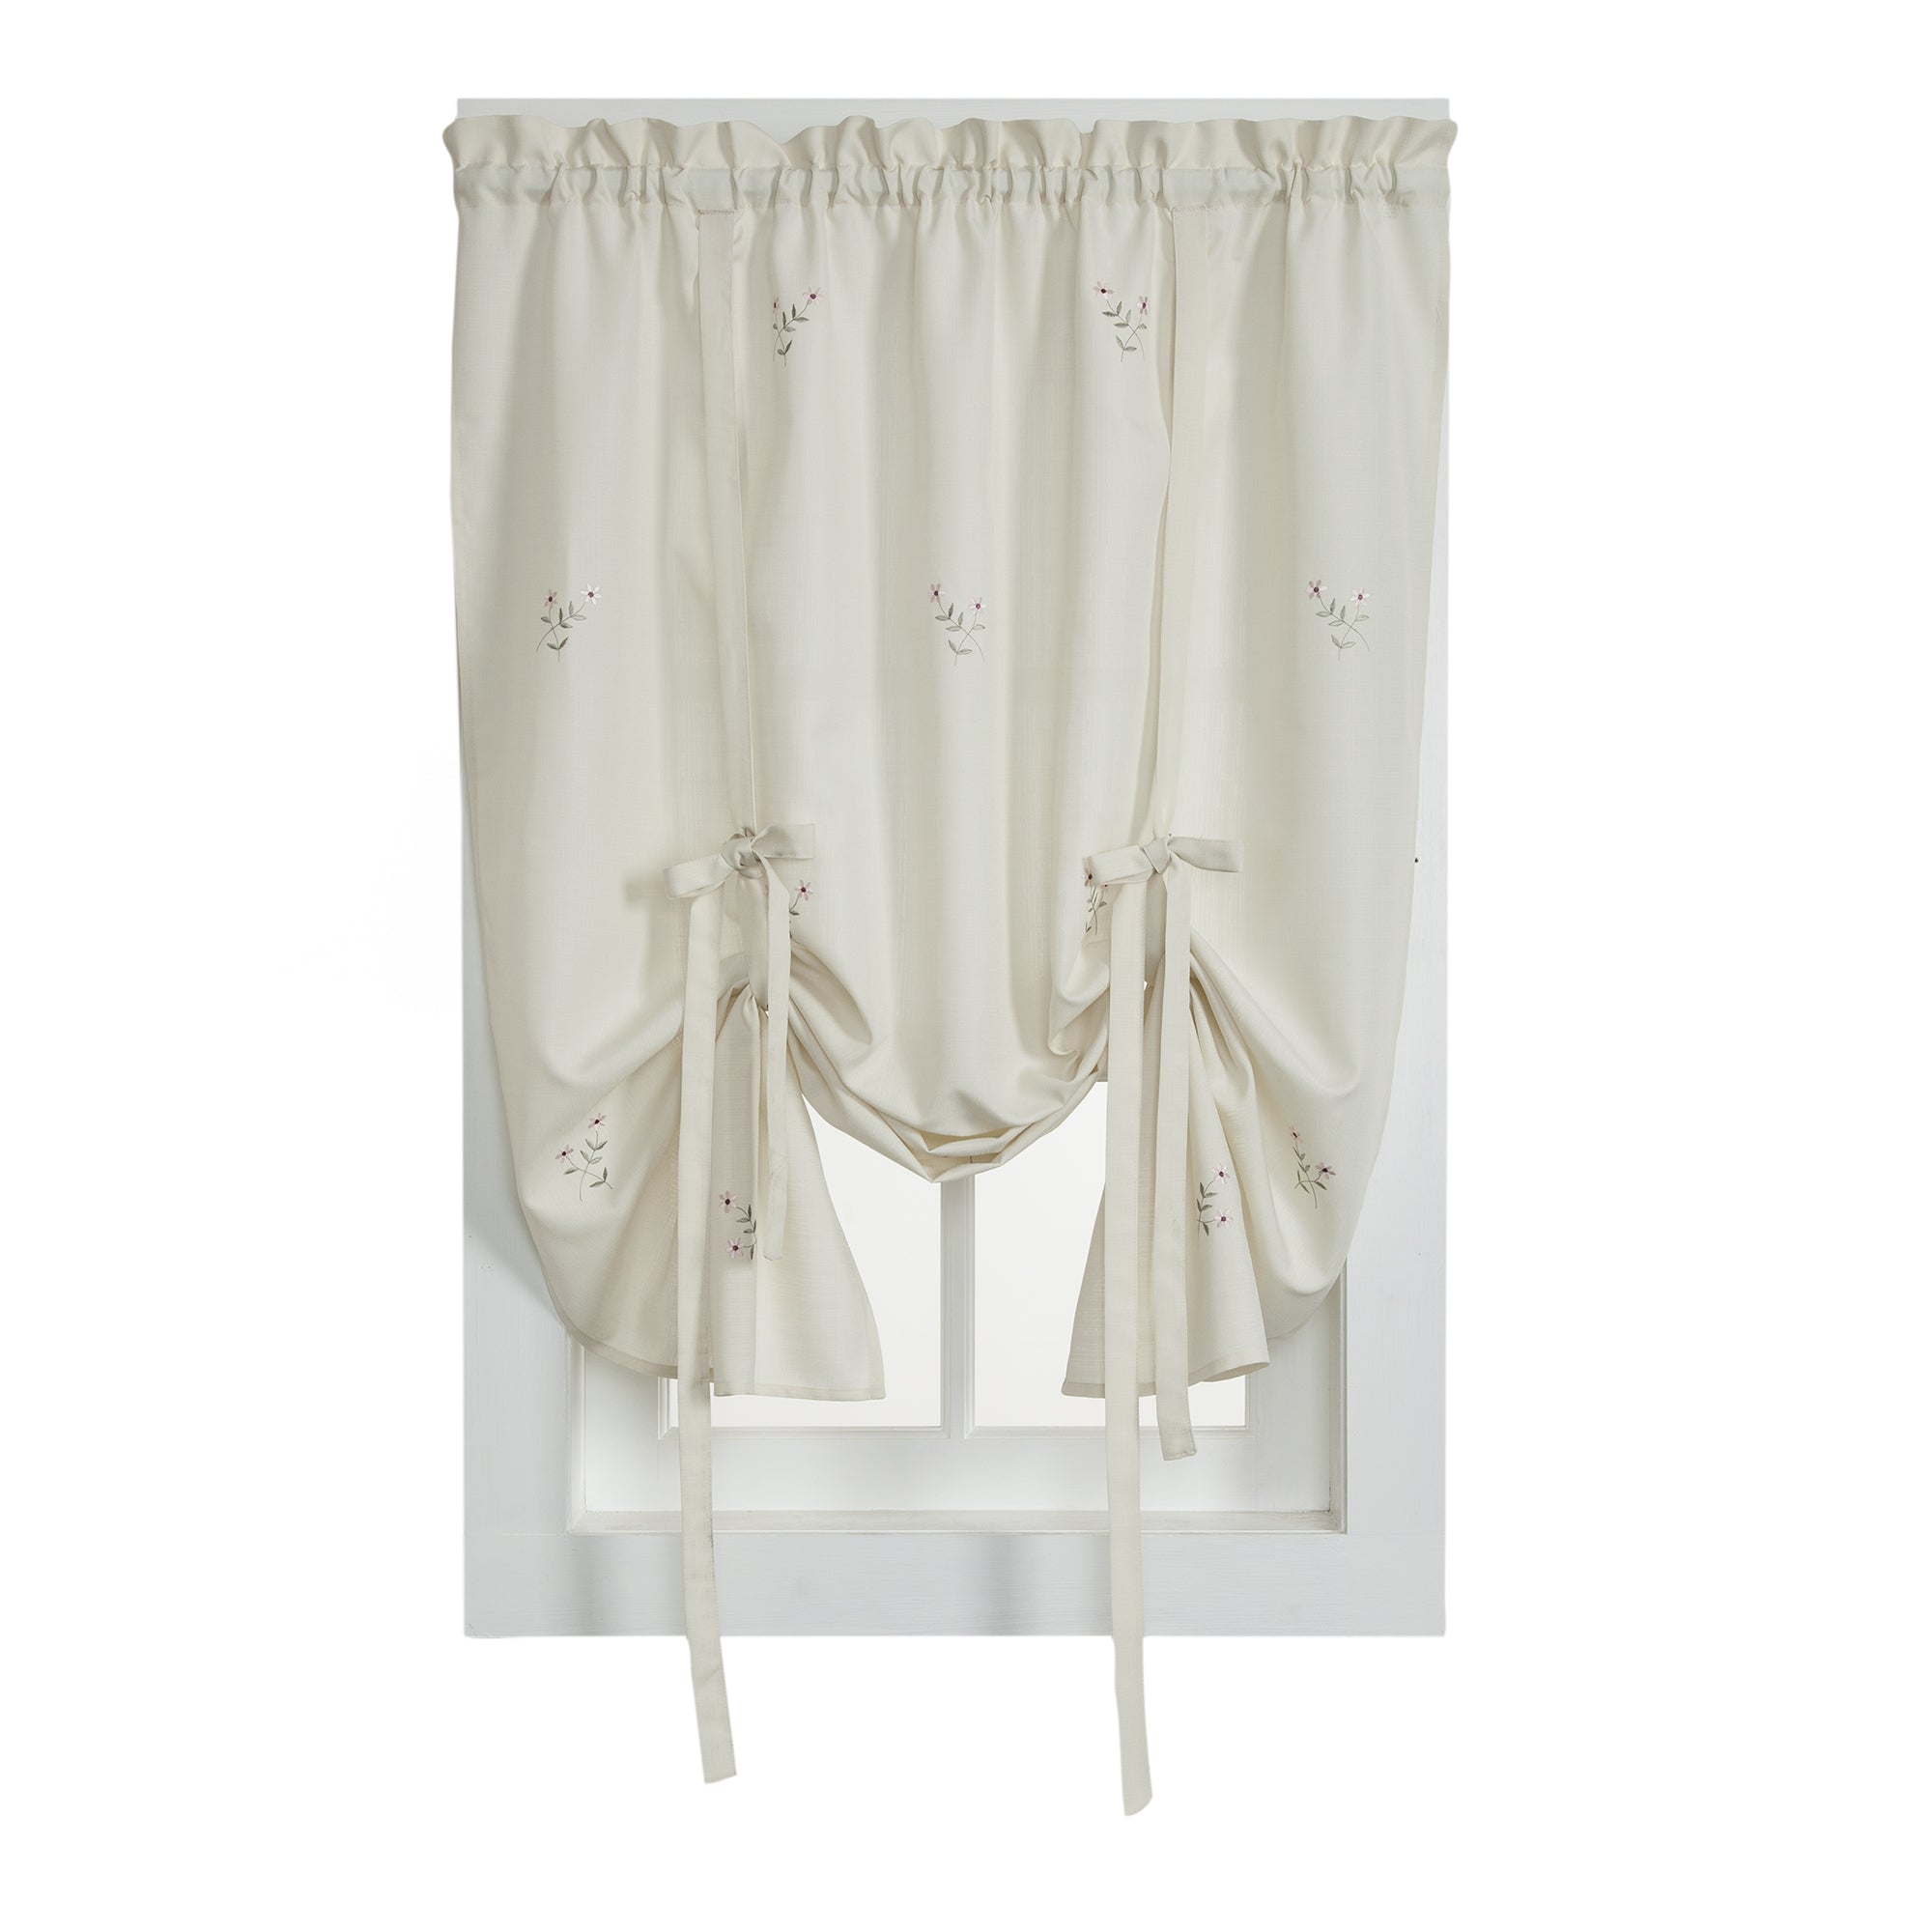 panel white curtains tie treatments up l trellis grommet curtain top valance insulated window balloon thermal